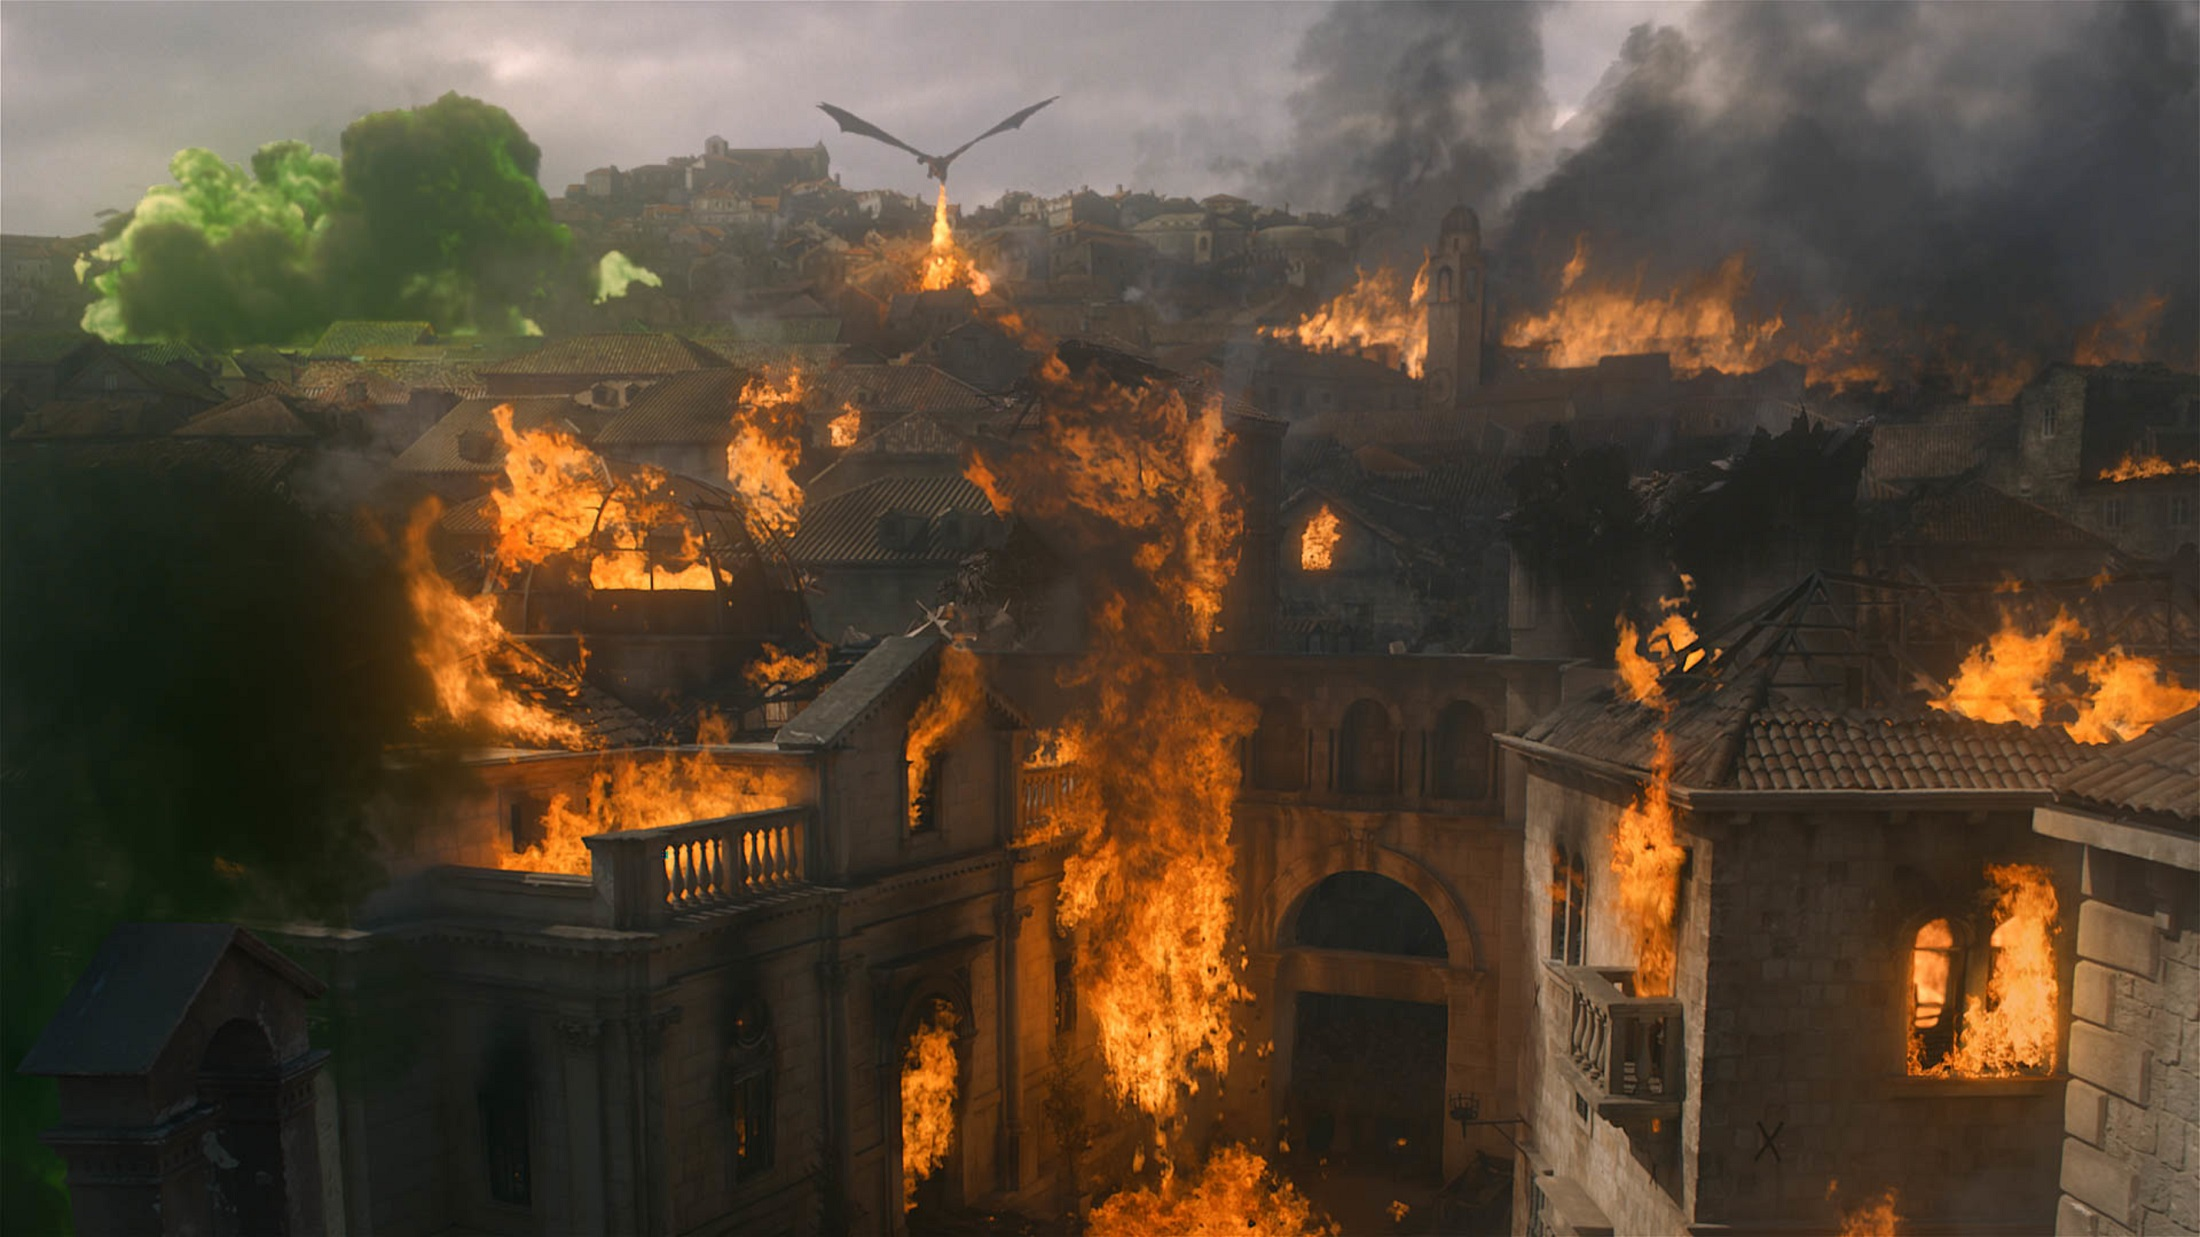 Kings Landing destruction The Bells